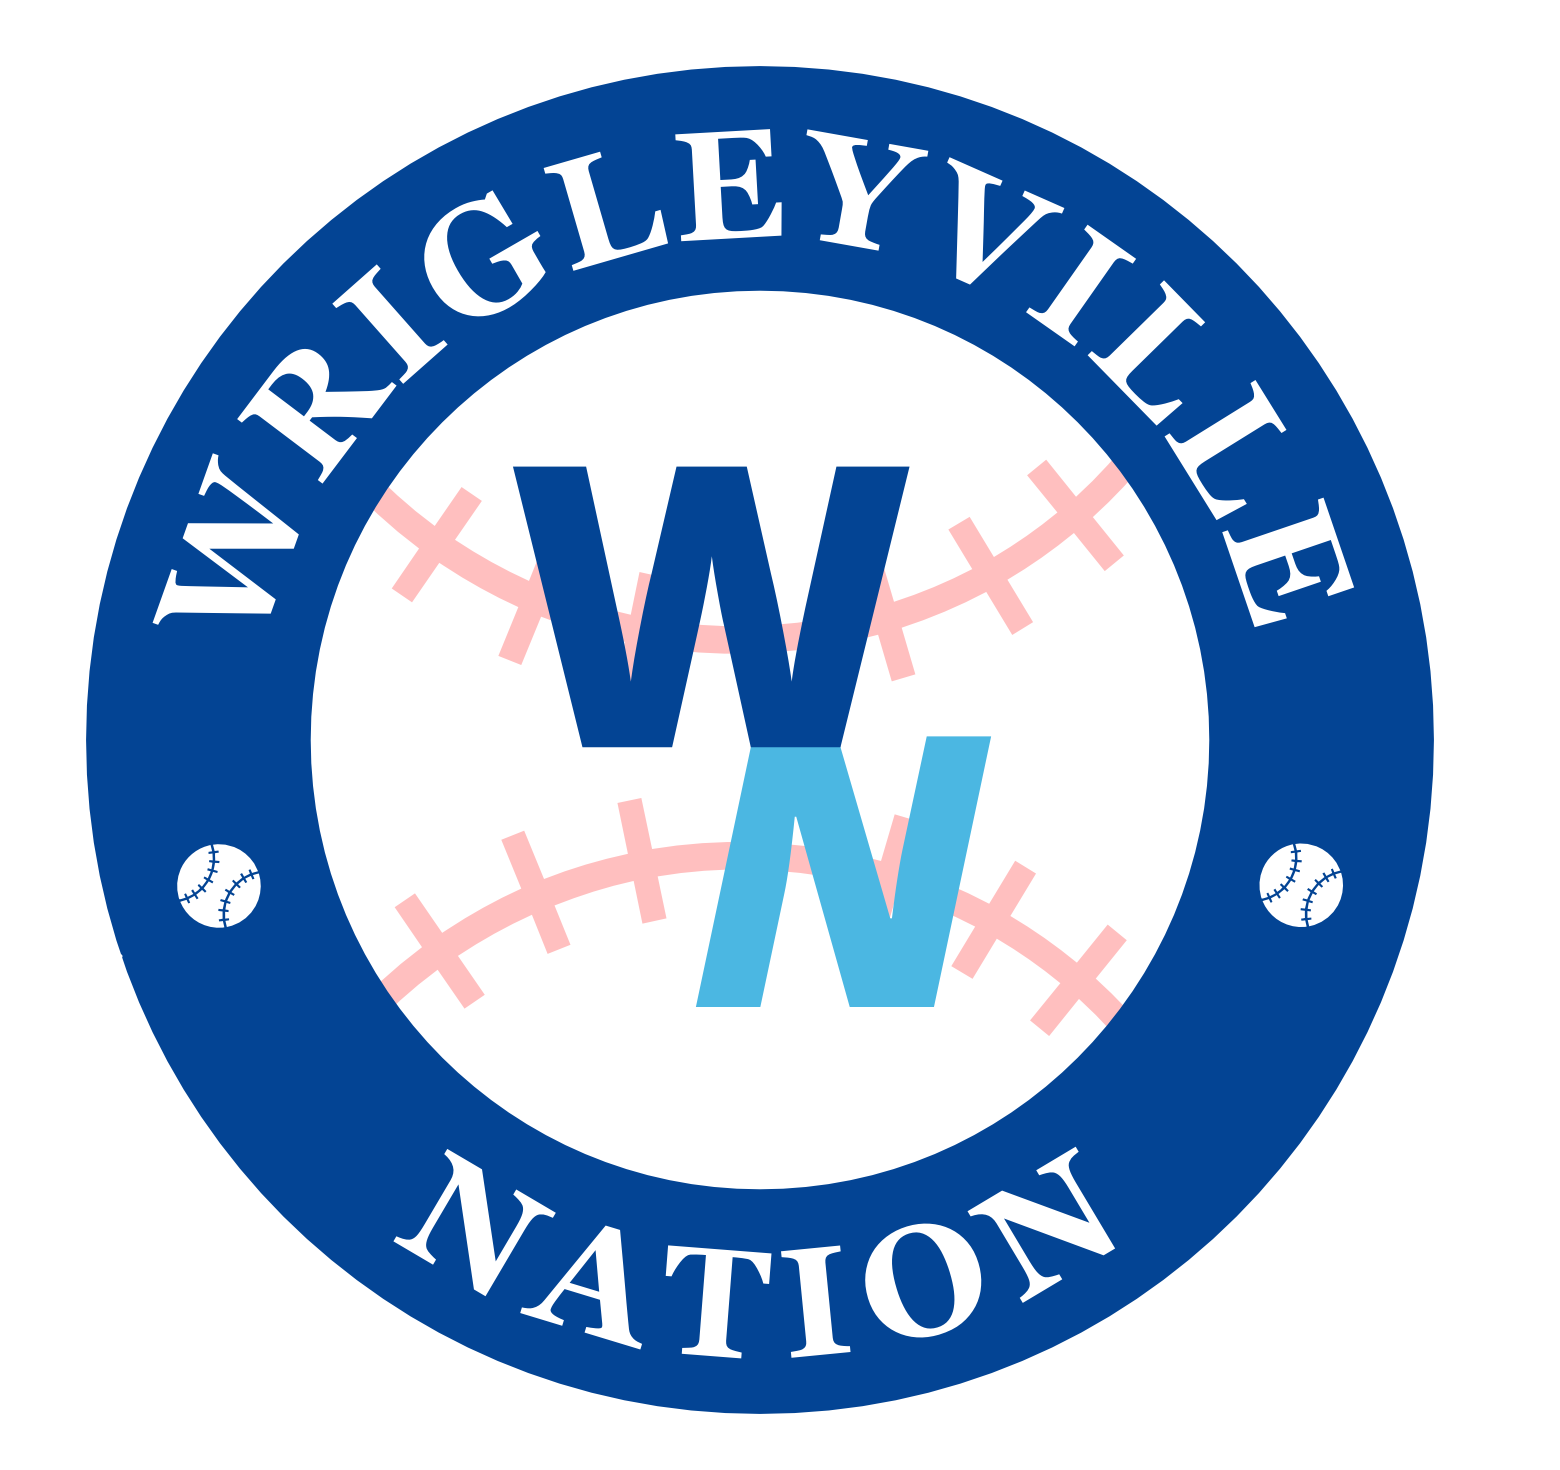 Wrigleyville Nation Ep 235 - Guest: Tyler Wilson, Cubs vs Marlins Playoff Preview show art